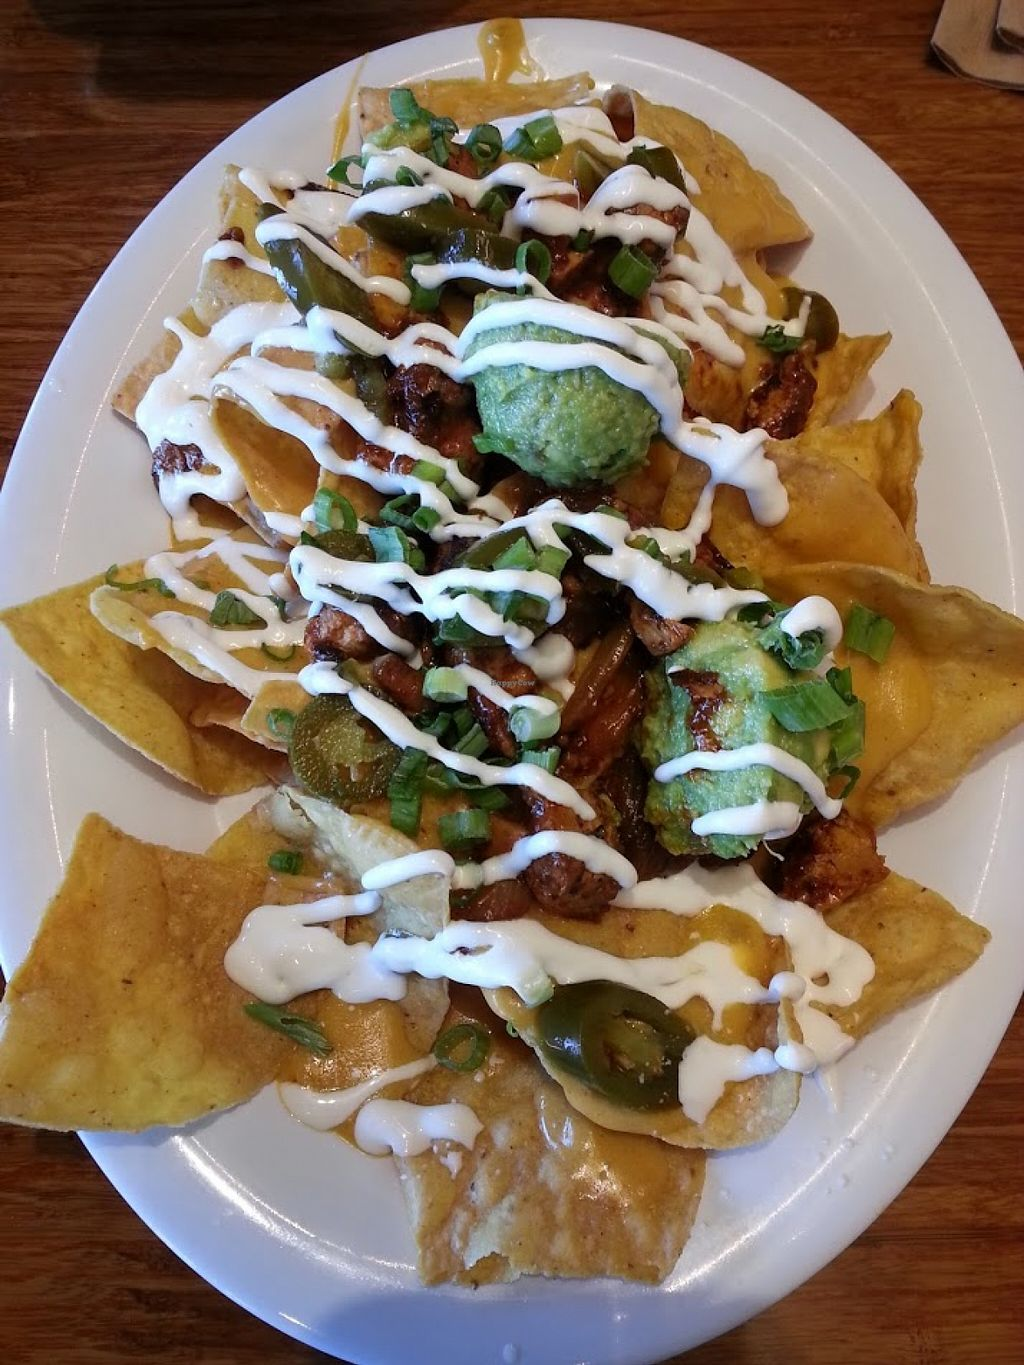 "Photo of Veggie Grill - Tustin Marketplace  by <a href=""/members/profile/CTerrwyn"">CTerrwyn</a> <br/>Mondo Nachos - Super yum! <br/> August 31, 2015  - <a href='/contact/abuse/image/52614/115978'>Report</a>"